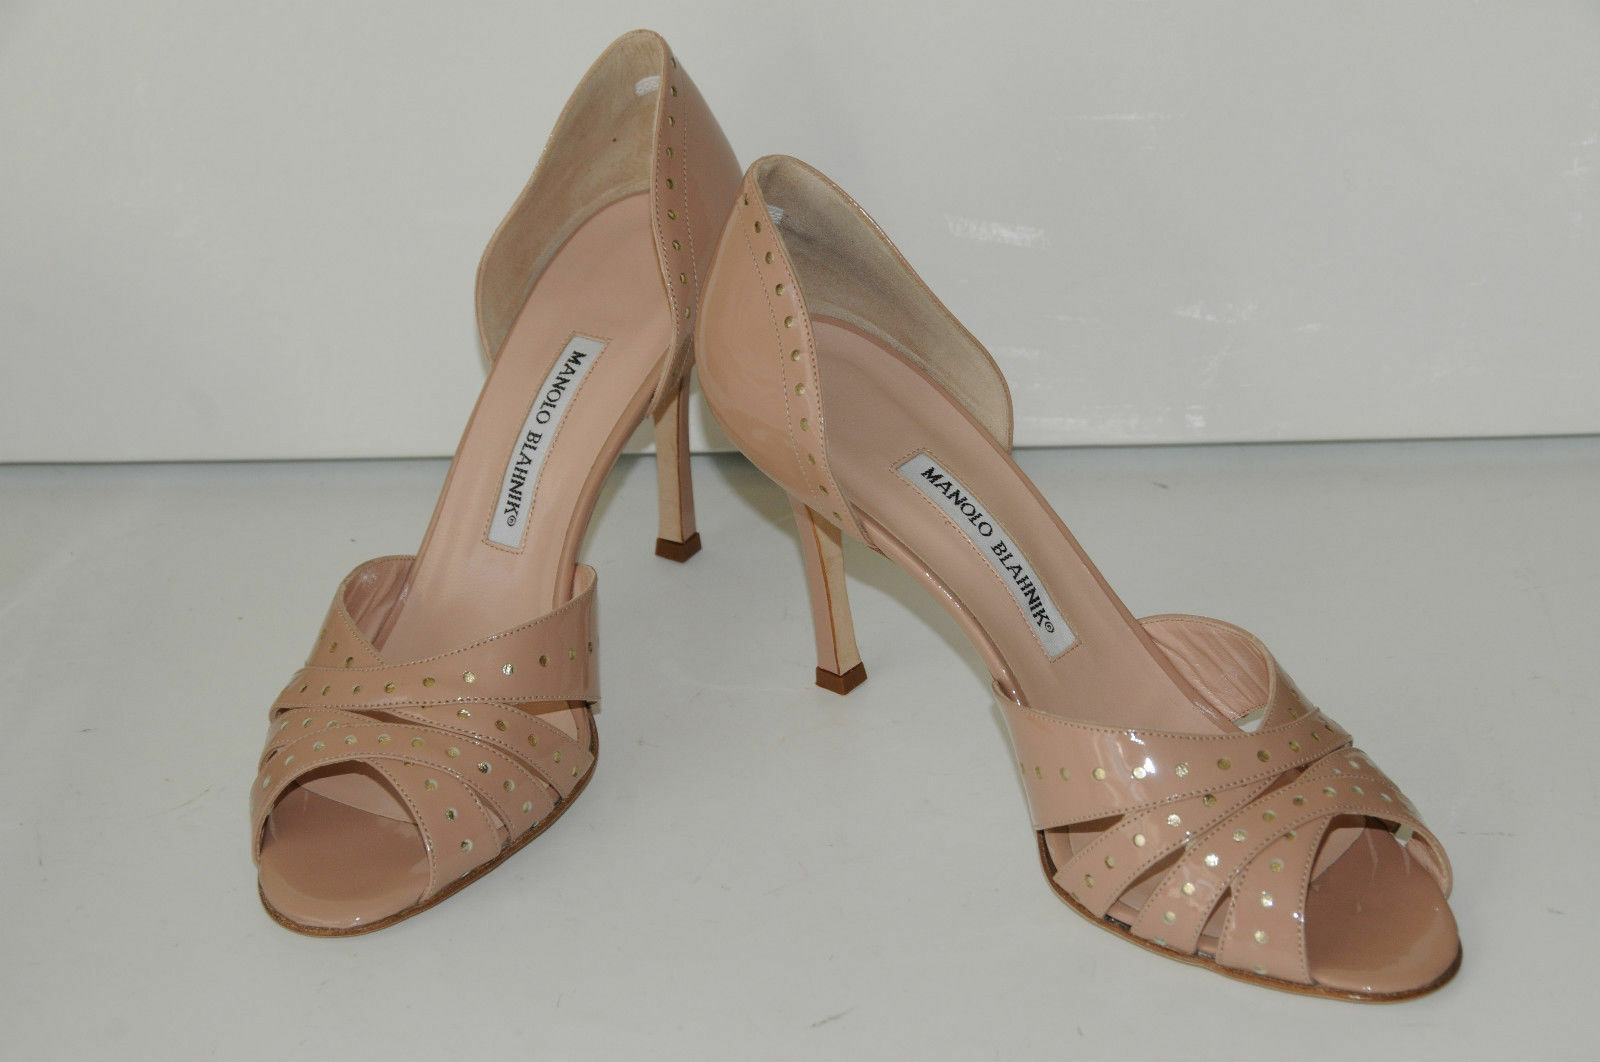 875 NEW MANOLO BLAHNIK PERFO PERFO PERFO FLESH Nude BEIGE PATENT LEATHER dorsay  chaussures 41 9f3125